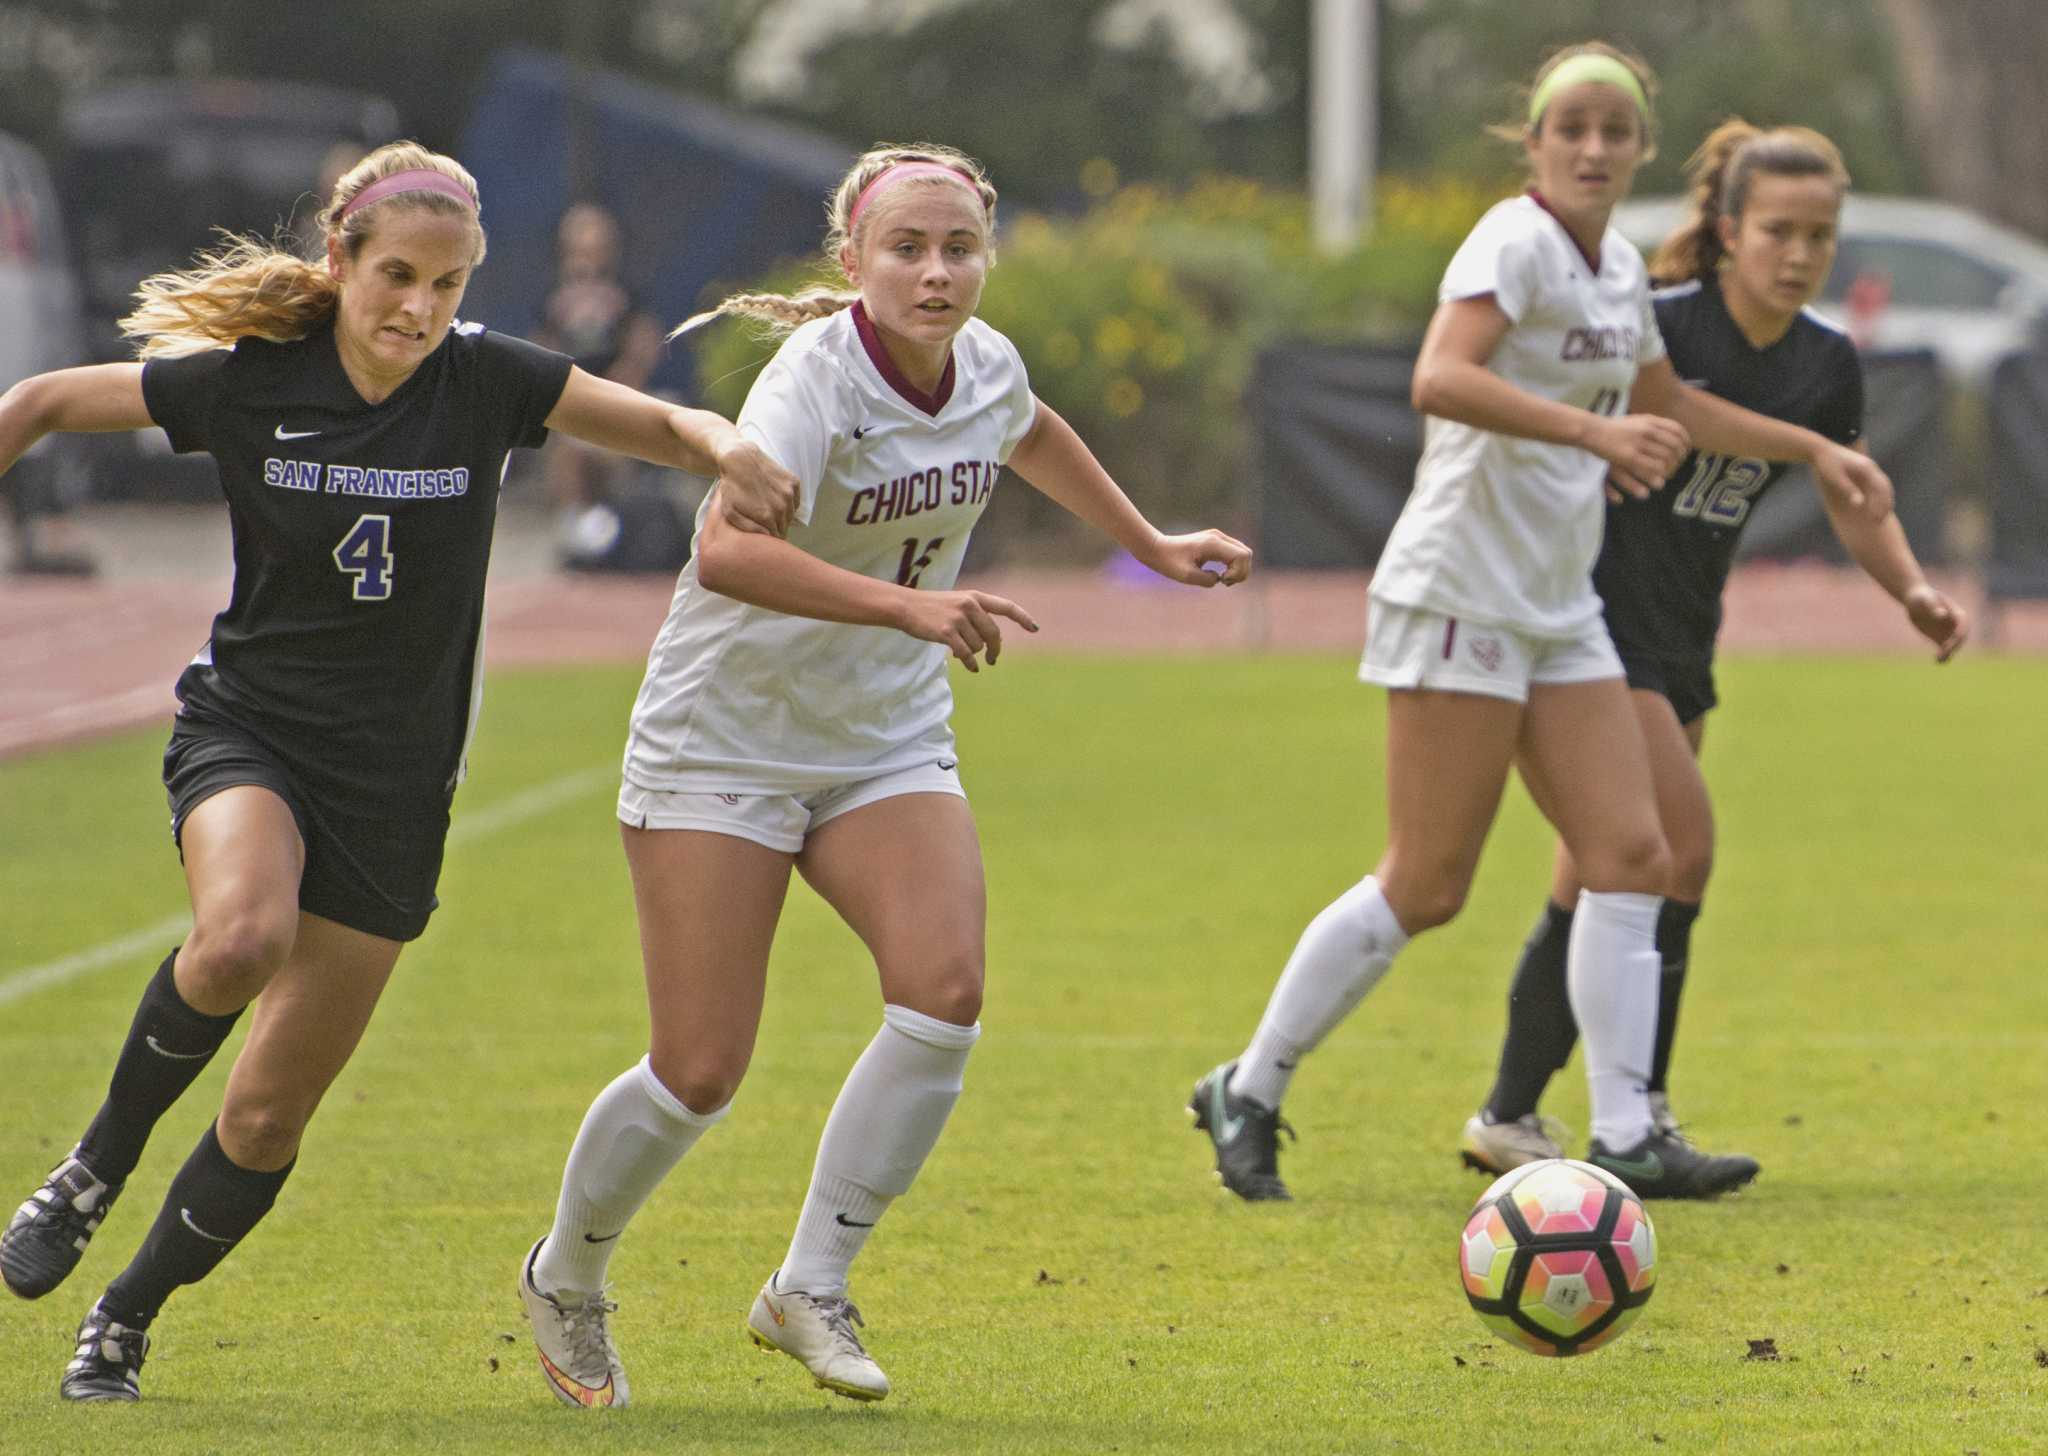 SF State women's soccer upsets No. 13 Chico State University in thriller